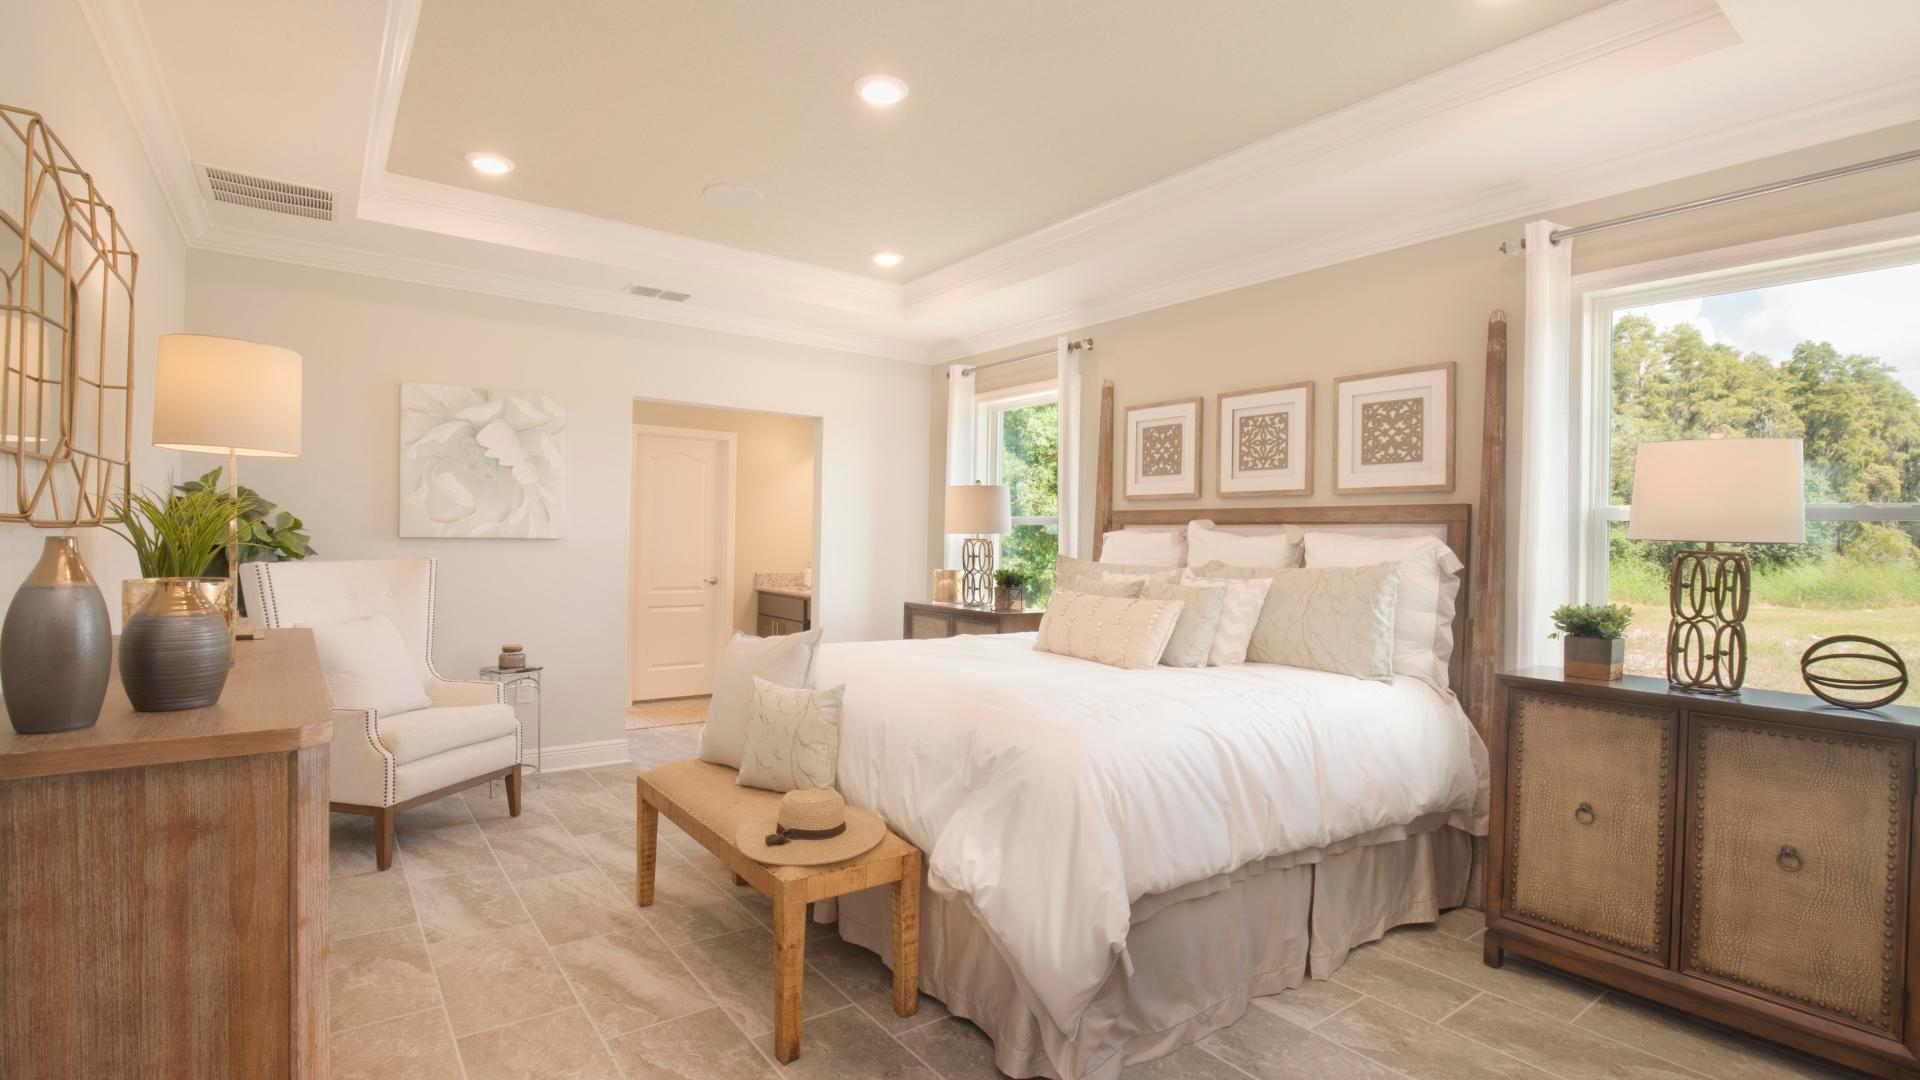 Bedroom featured in the Huntington By Maronda Homes in Jacksonville-St. Augustine, GA